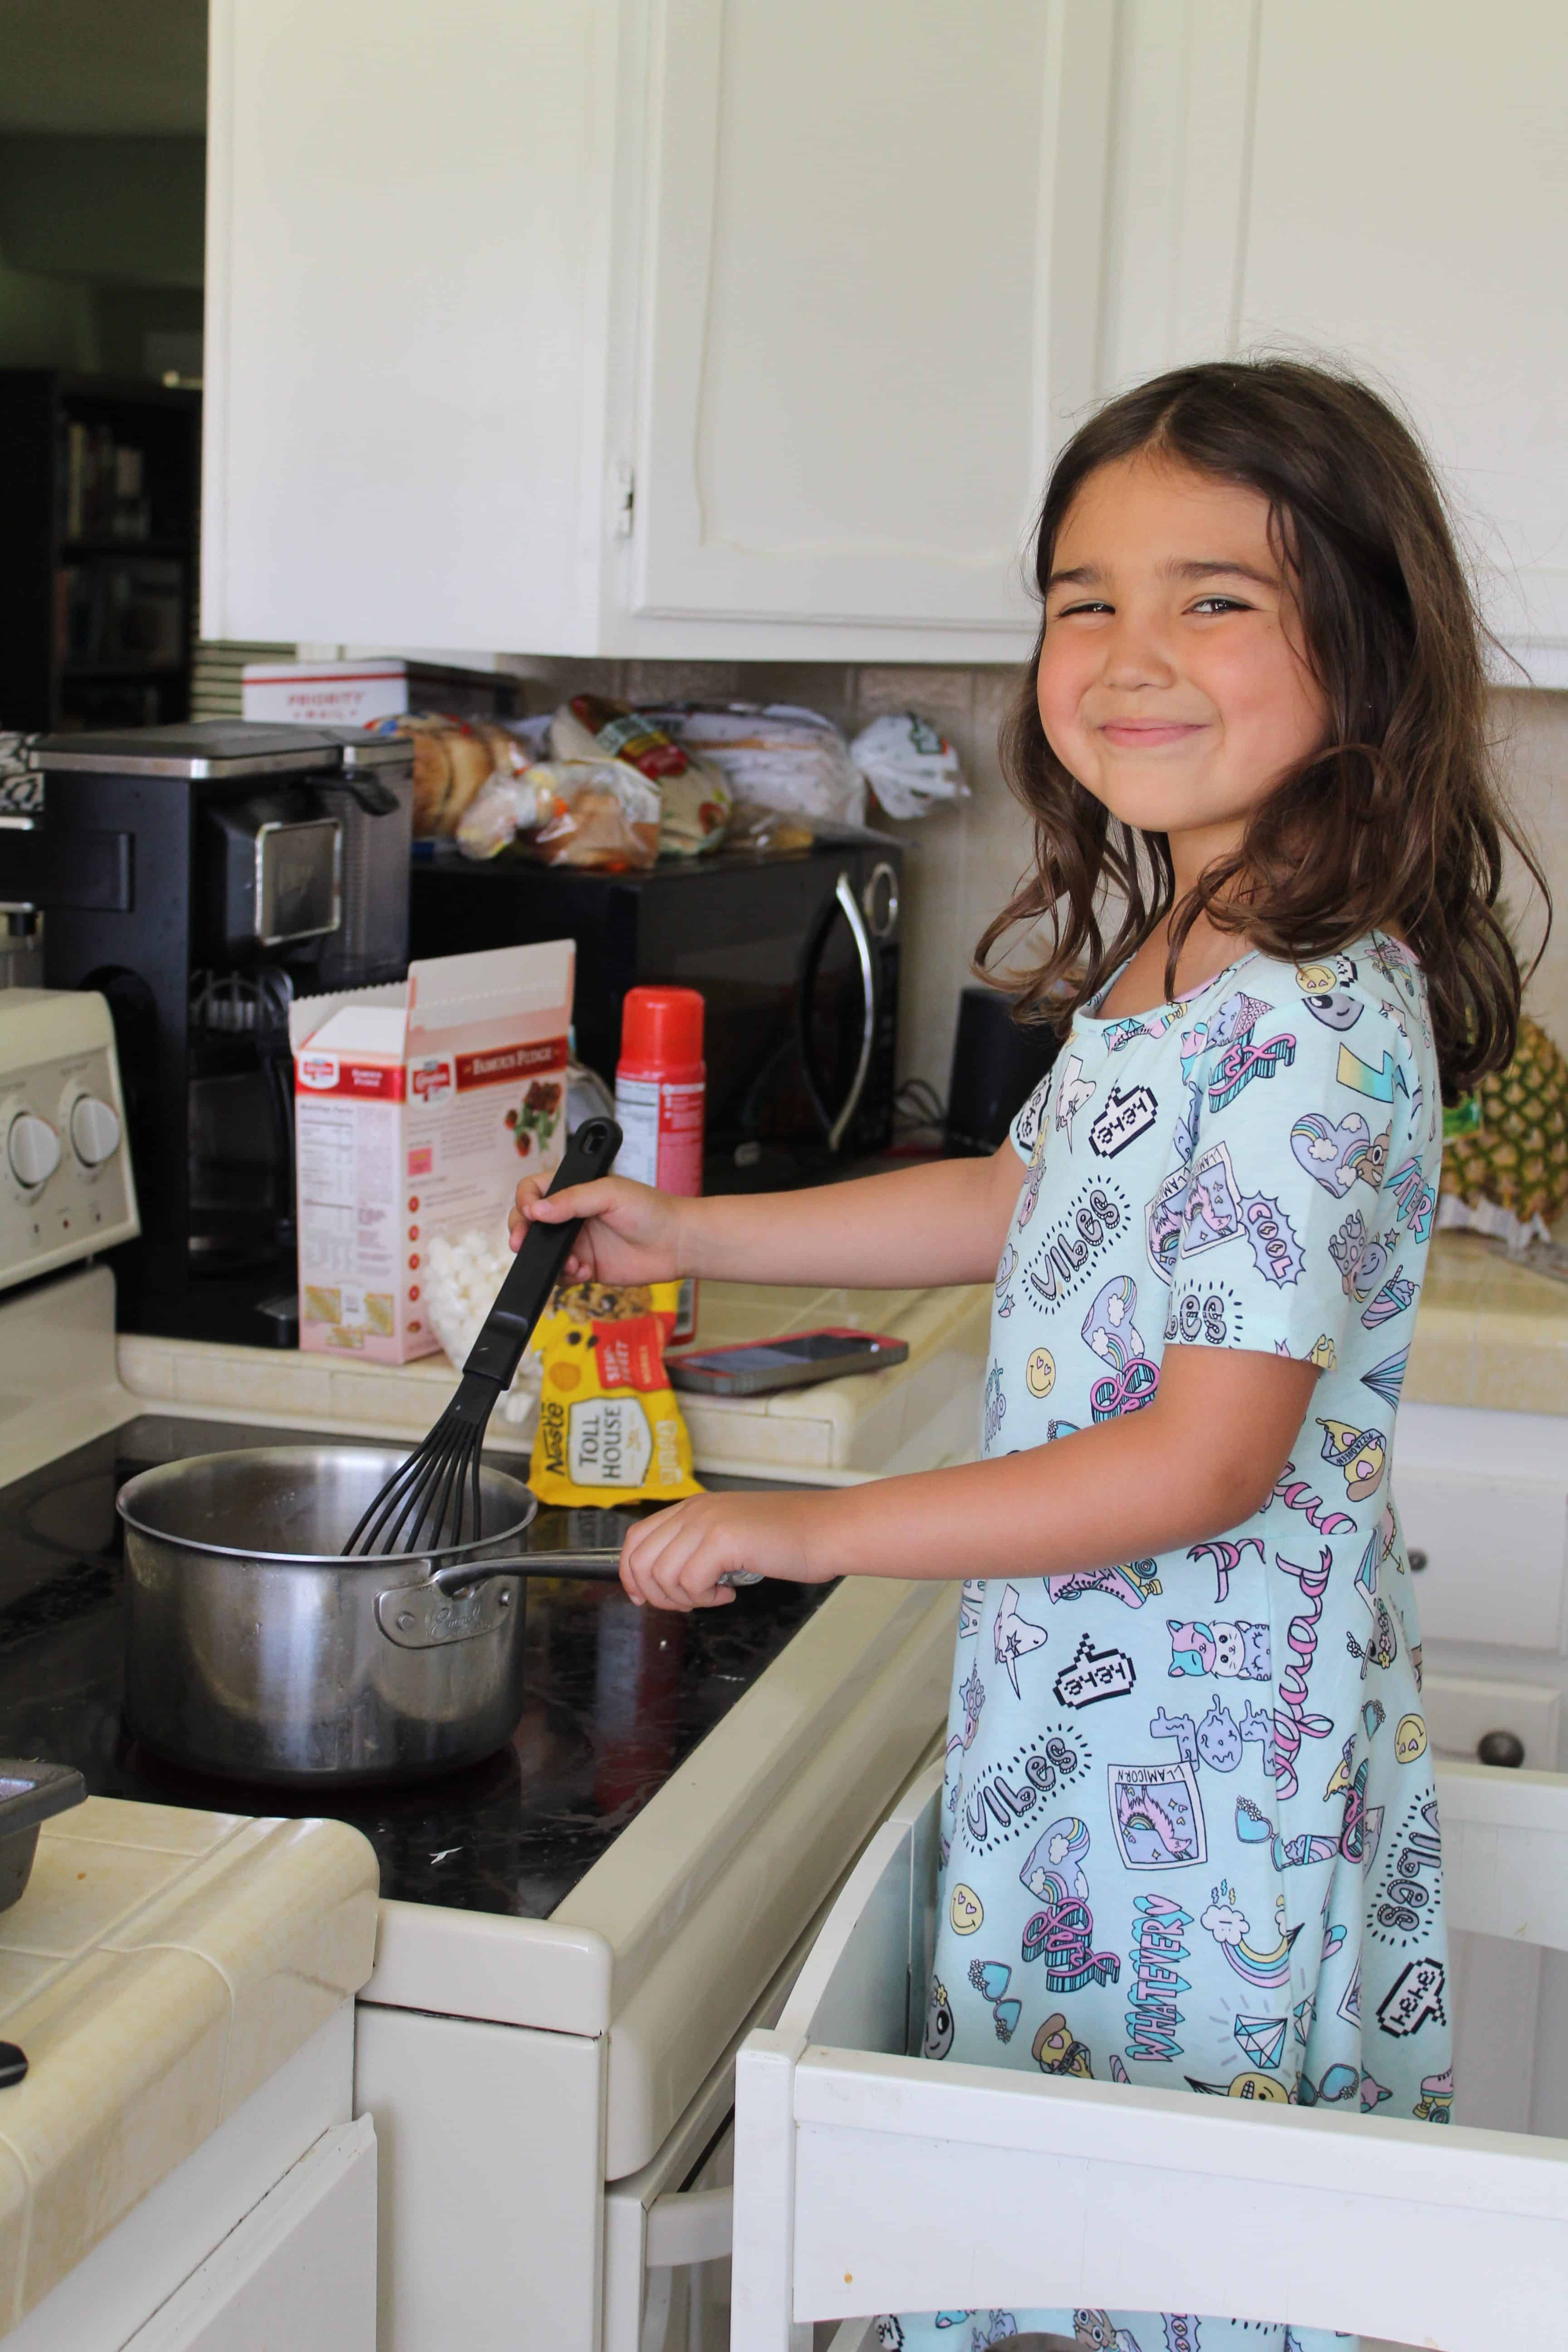 Child helping with the dinner meal mixing on the stove.